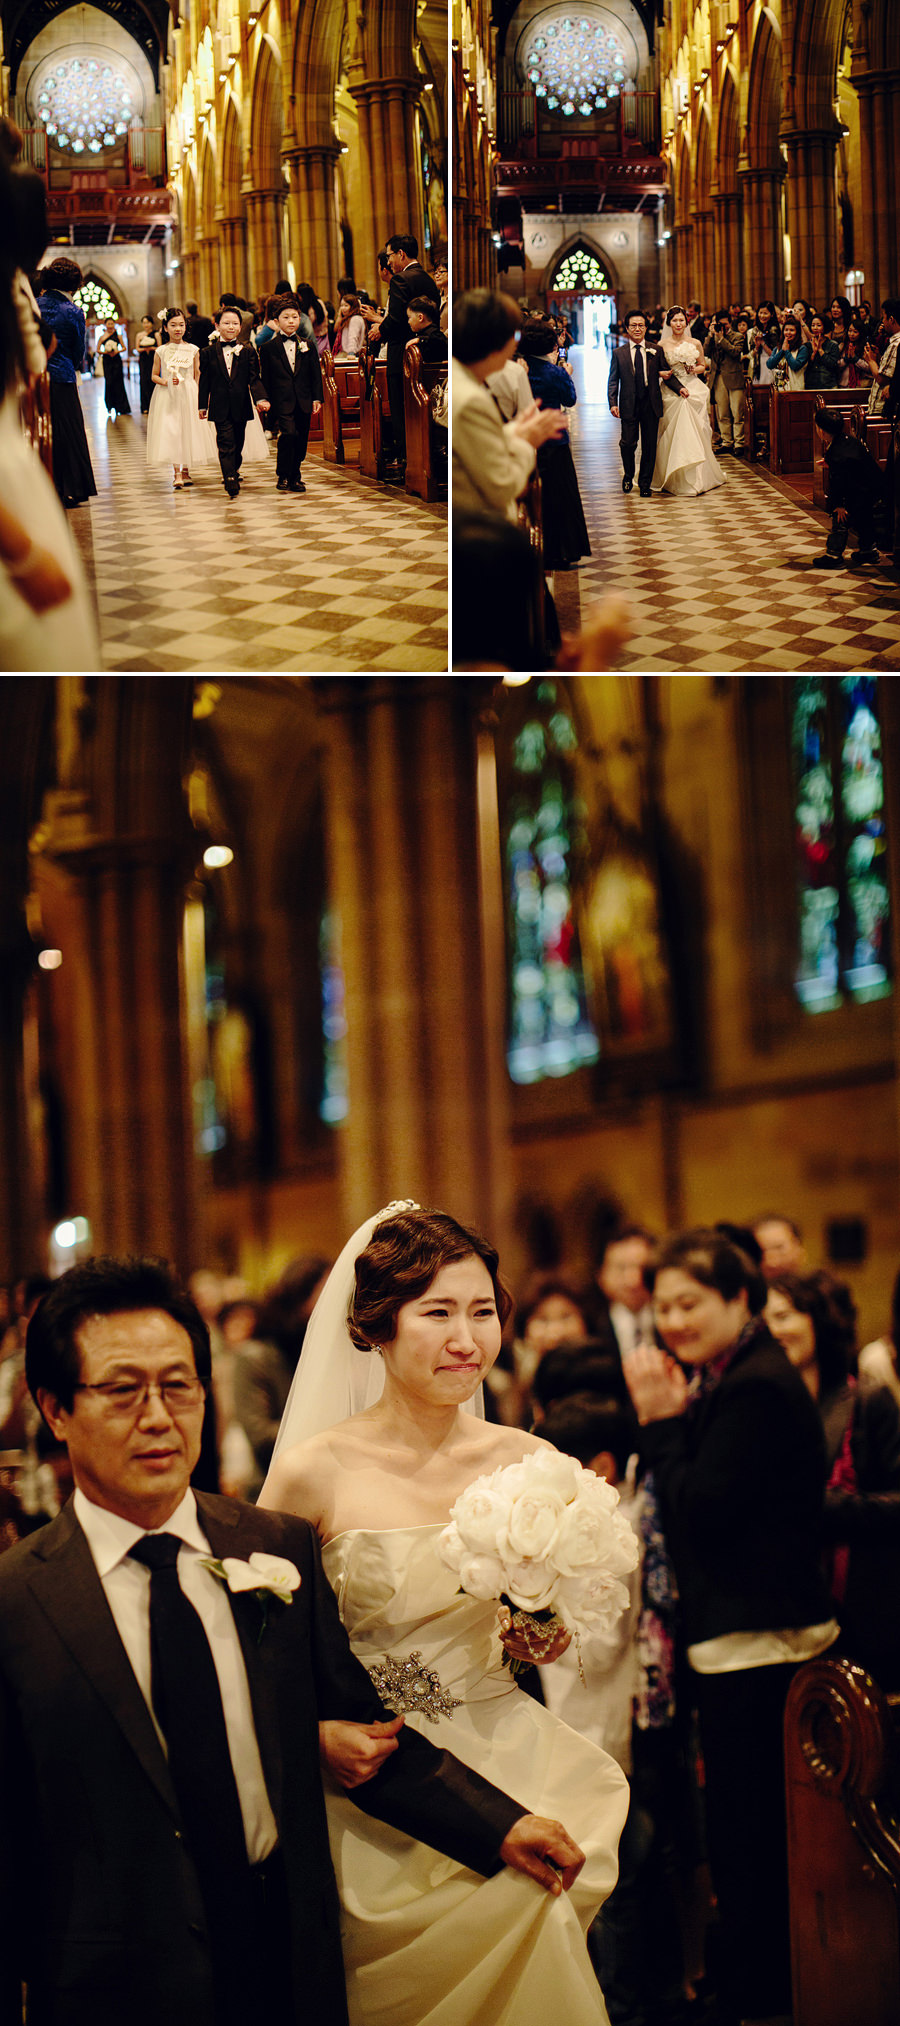 St Marys Cathedral Wedding Photographers: Bride walking down the aisle